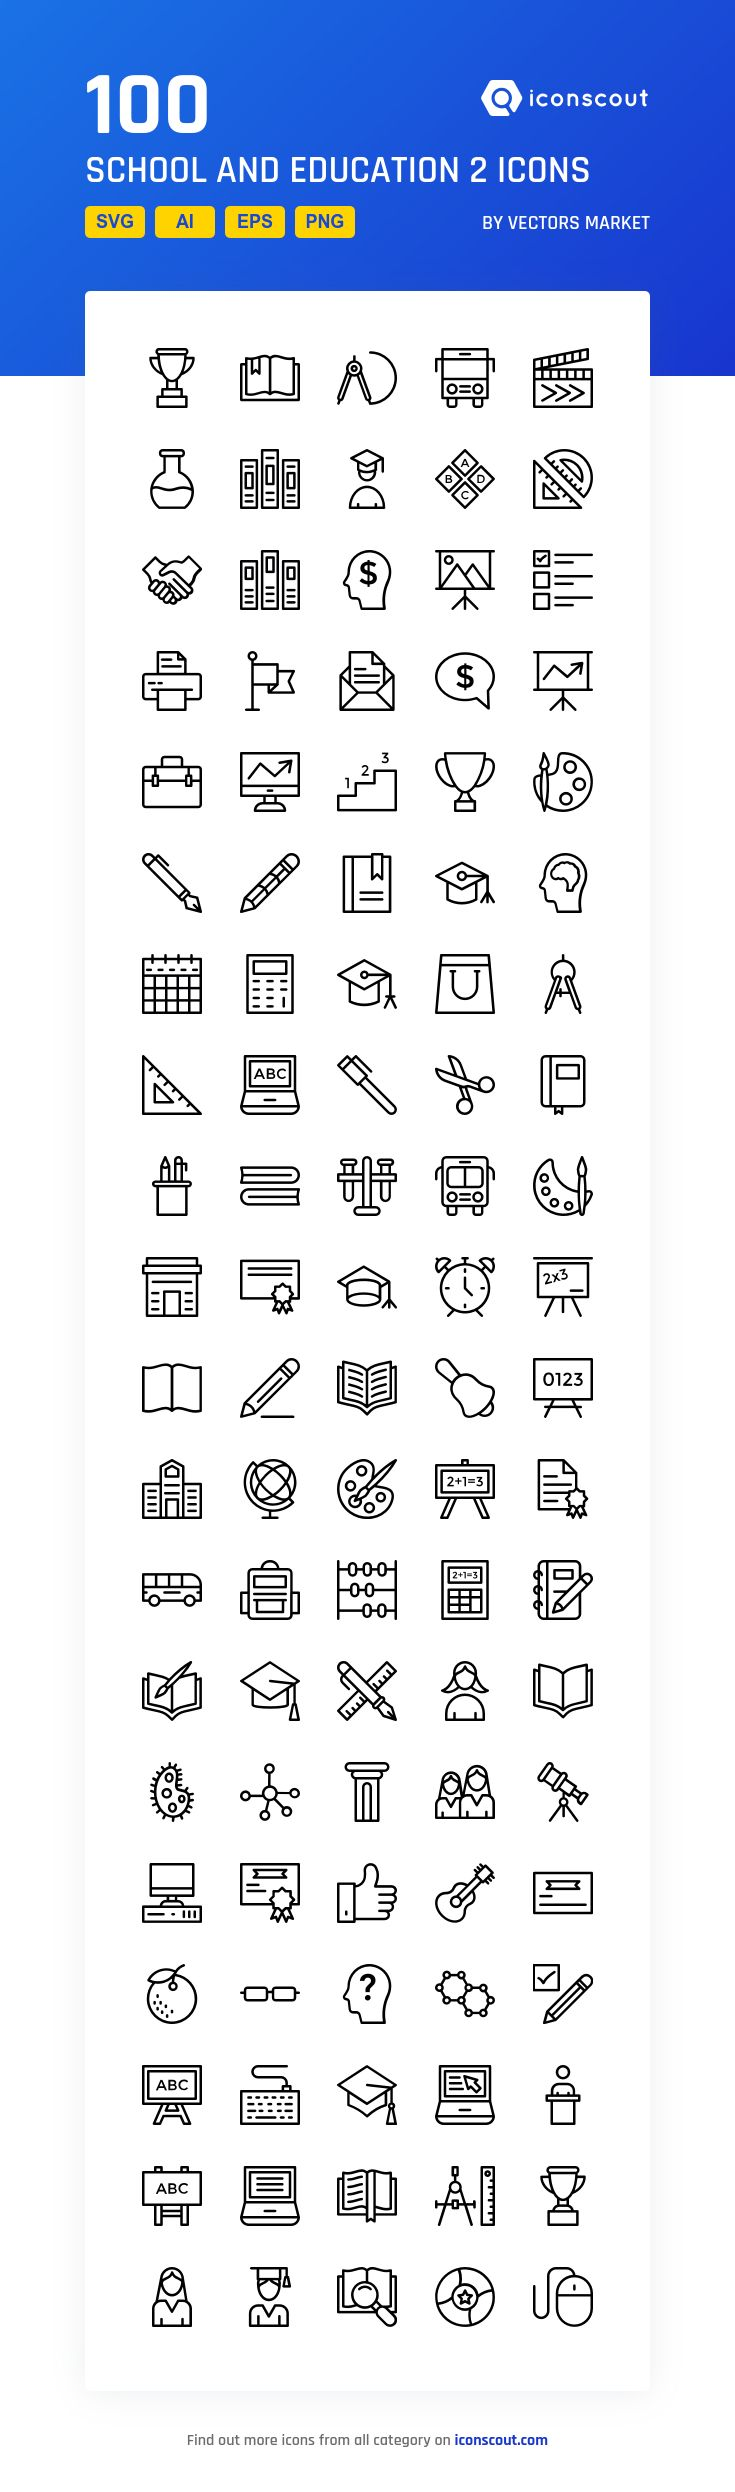 School And Education 2  Icon Pack - 100 Line Icons